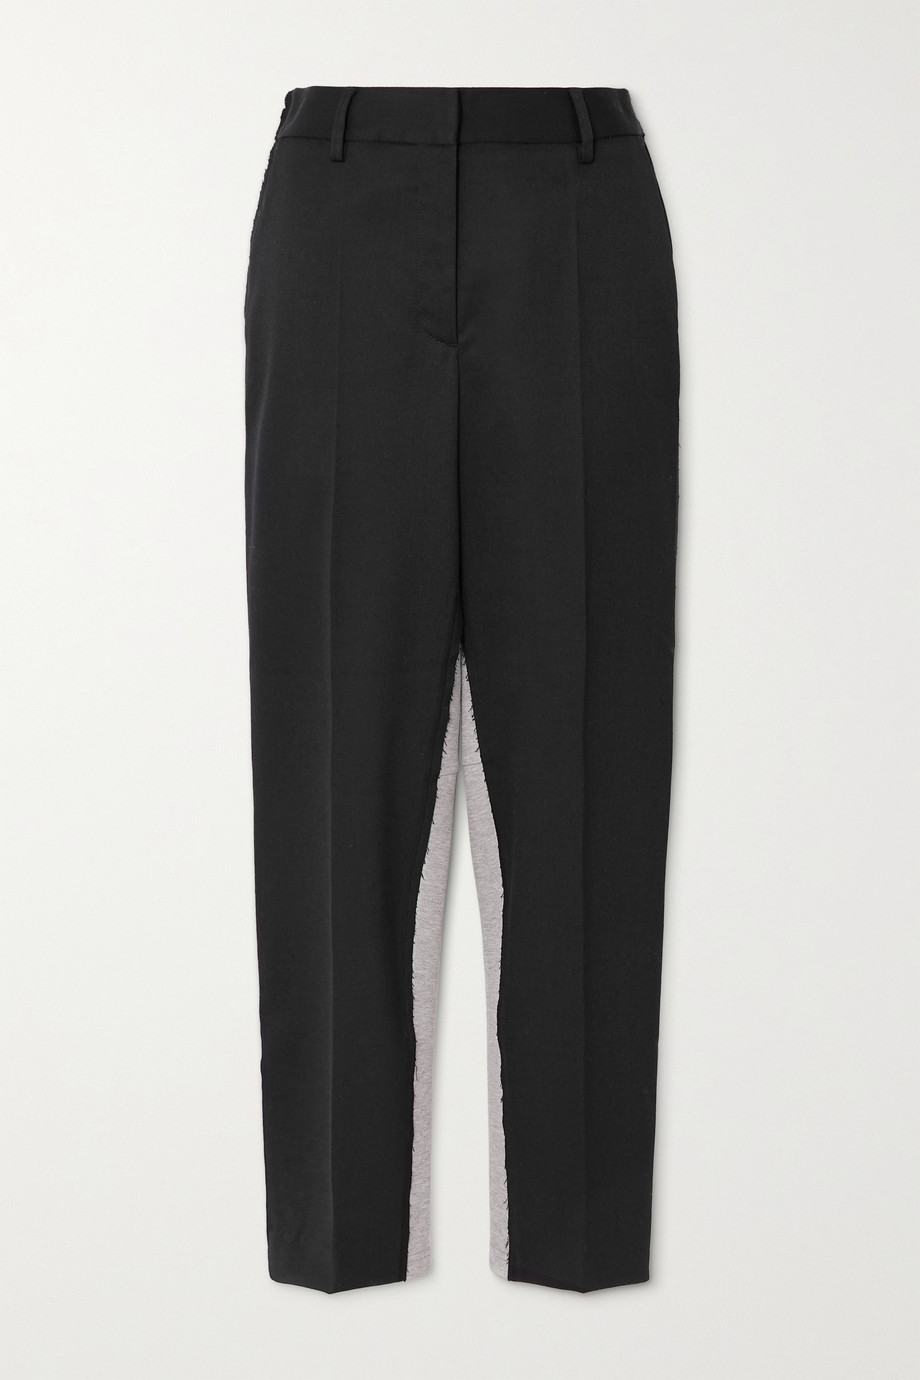 MM6 Maison Margiela Twill and cotton-blend jersey tapered pants